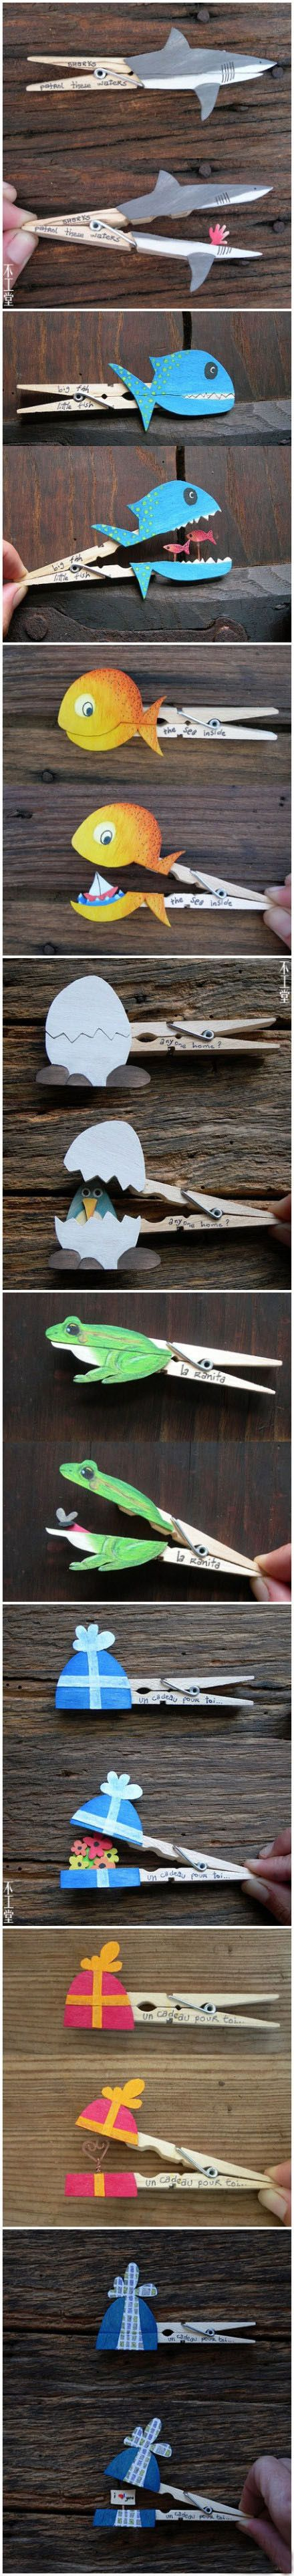 cute idea... the kids could get SUPER creative with this project. Found the clothespins... now for the kids to work!